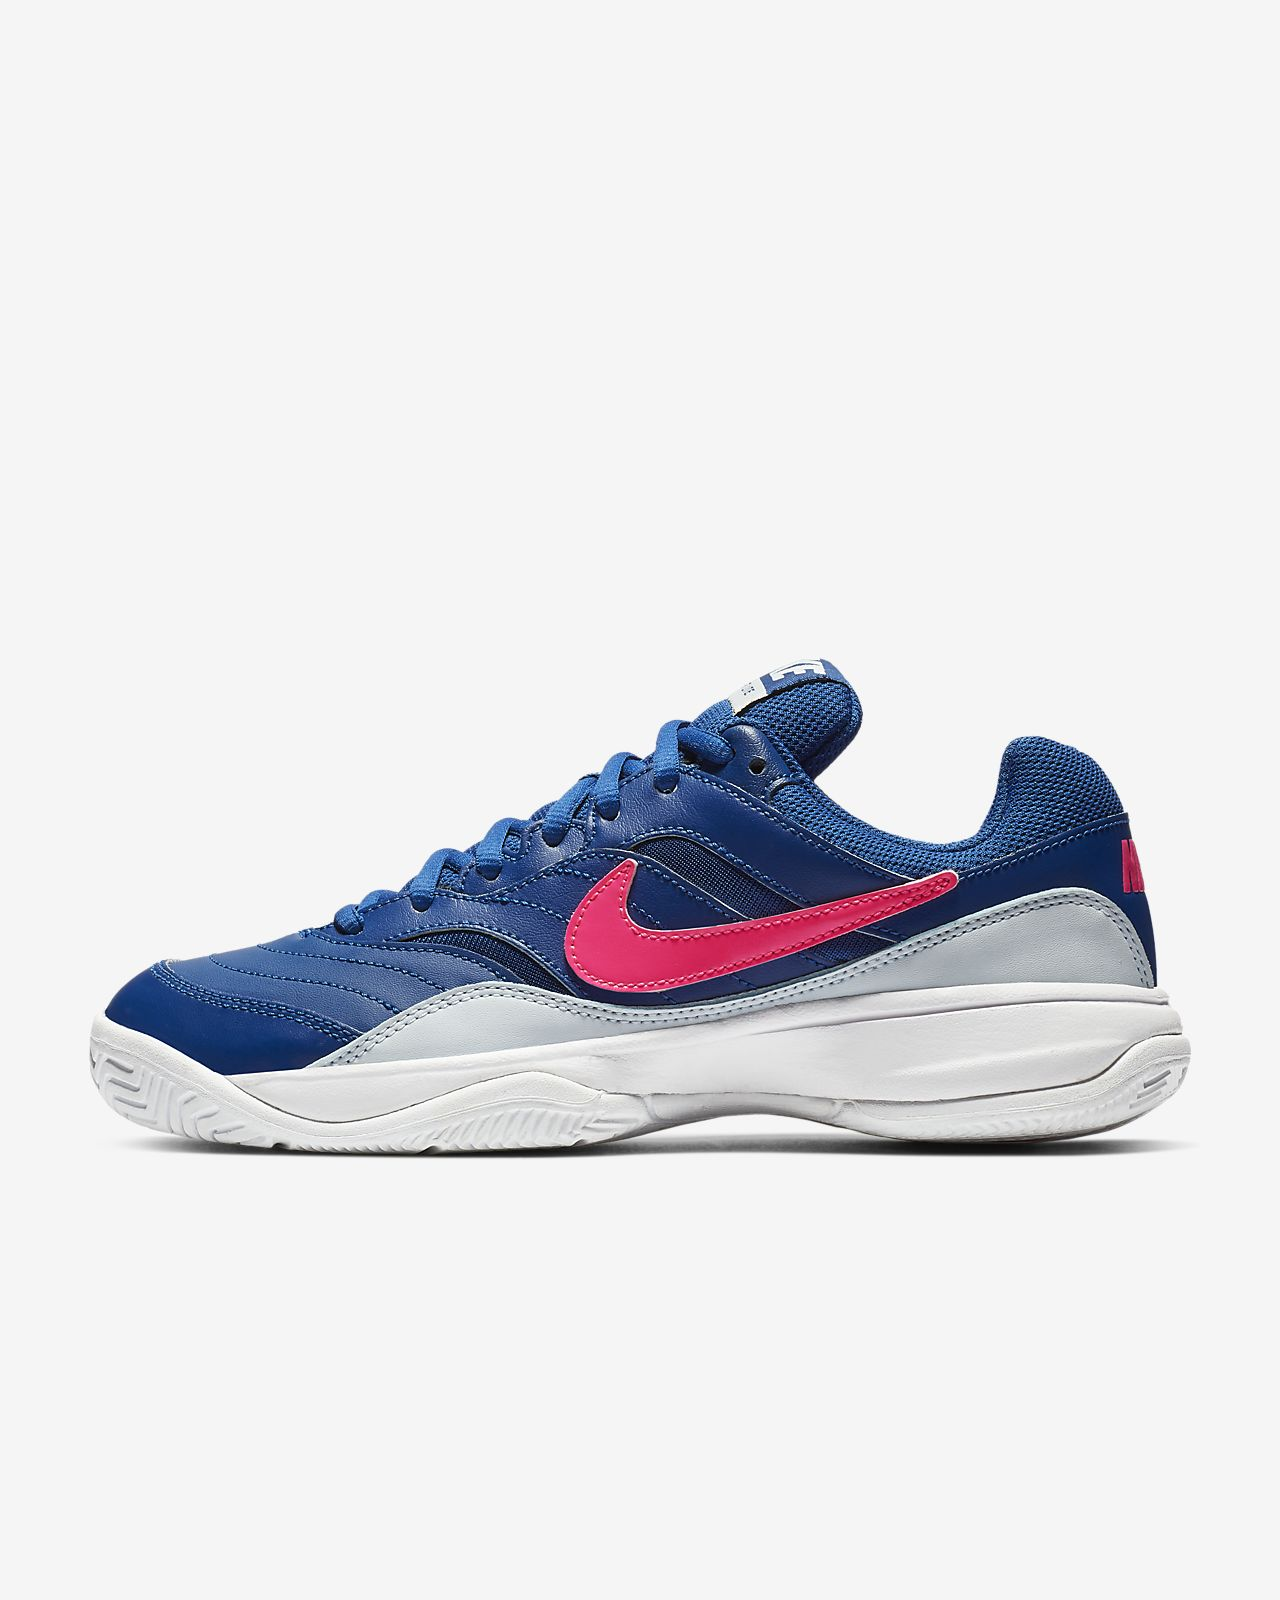 NikeCourt Lite Women's Hard Court Tennis Shoe